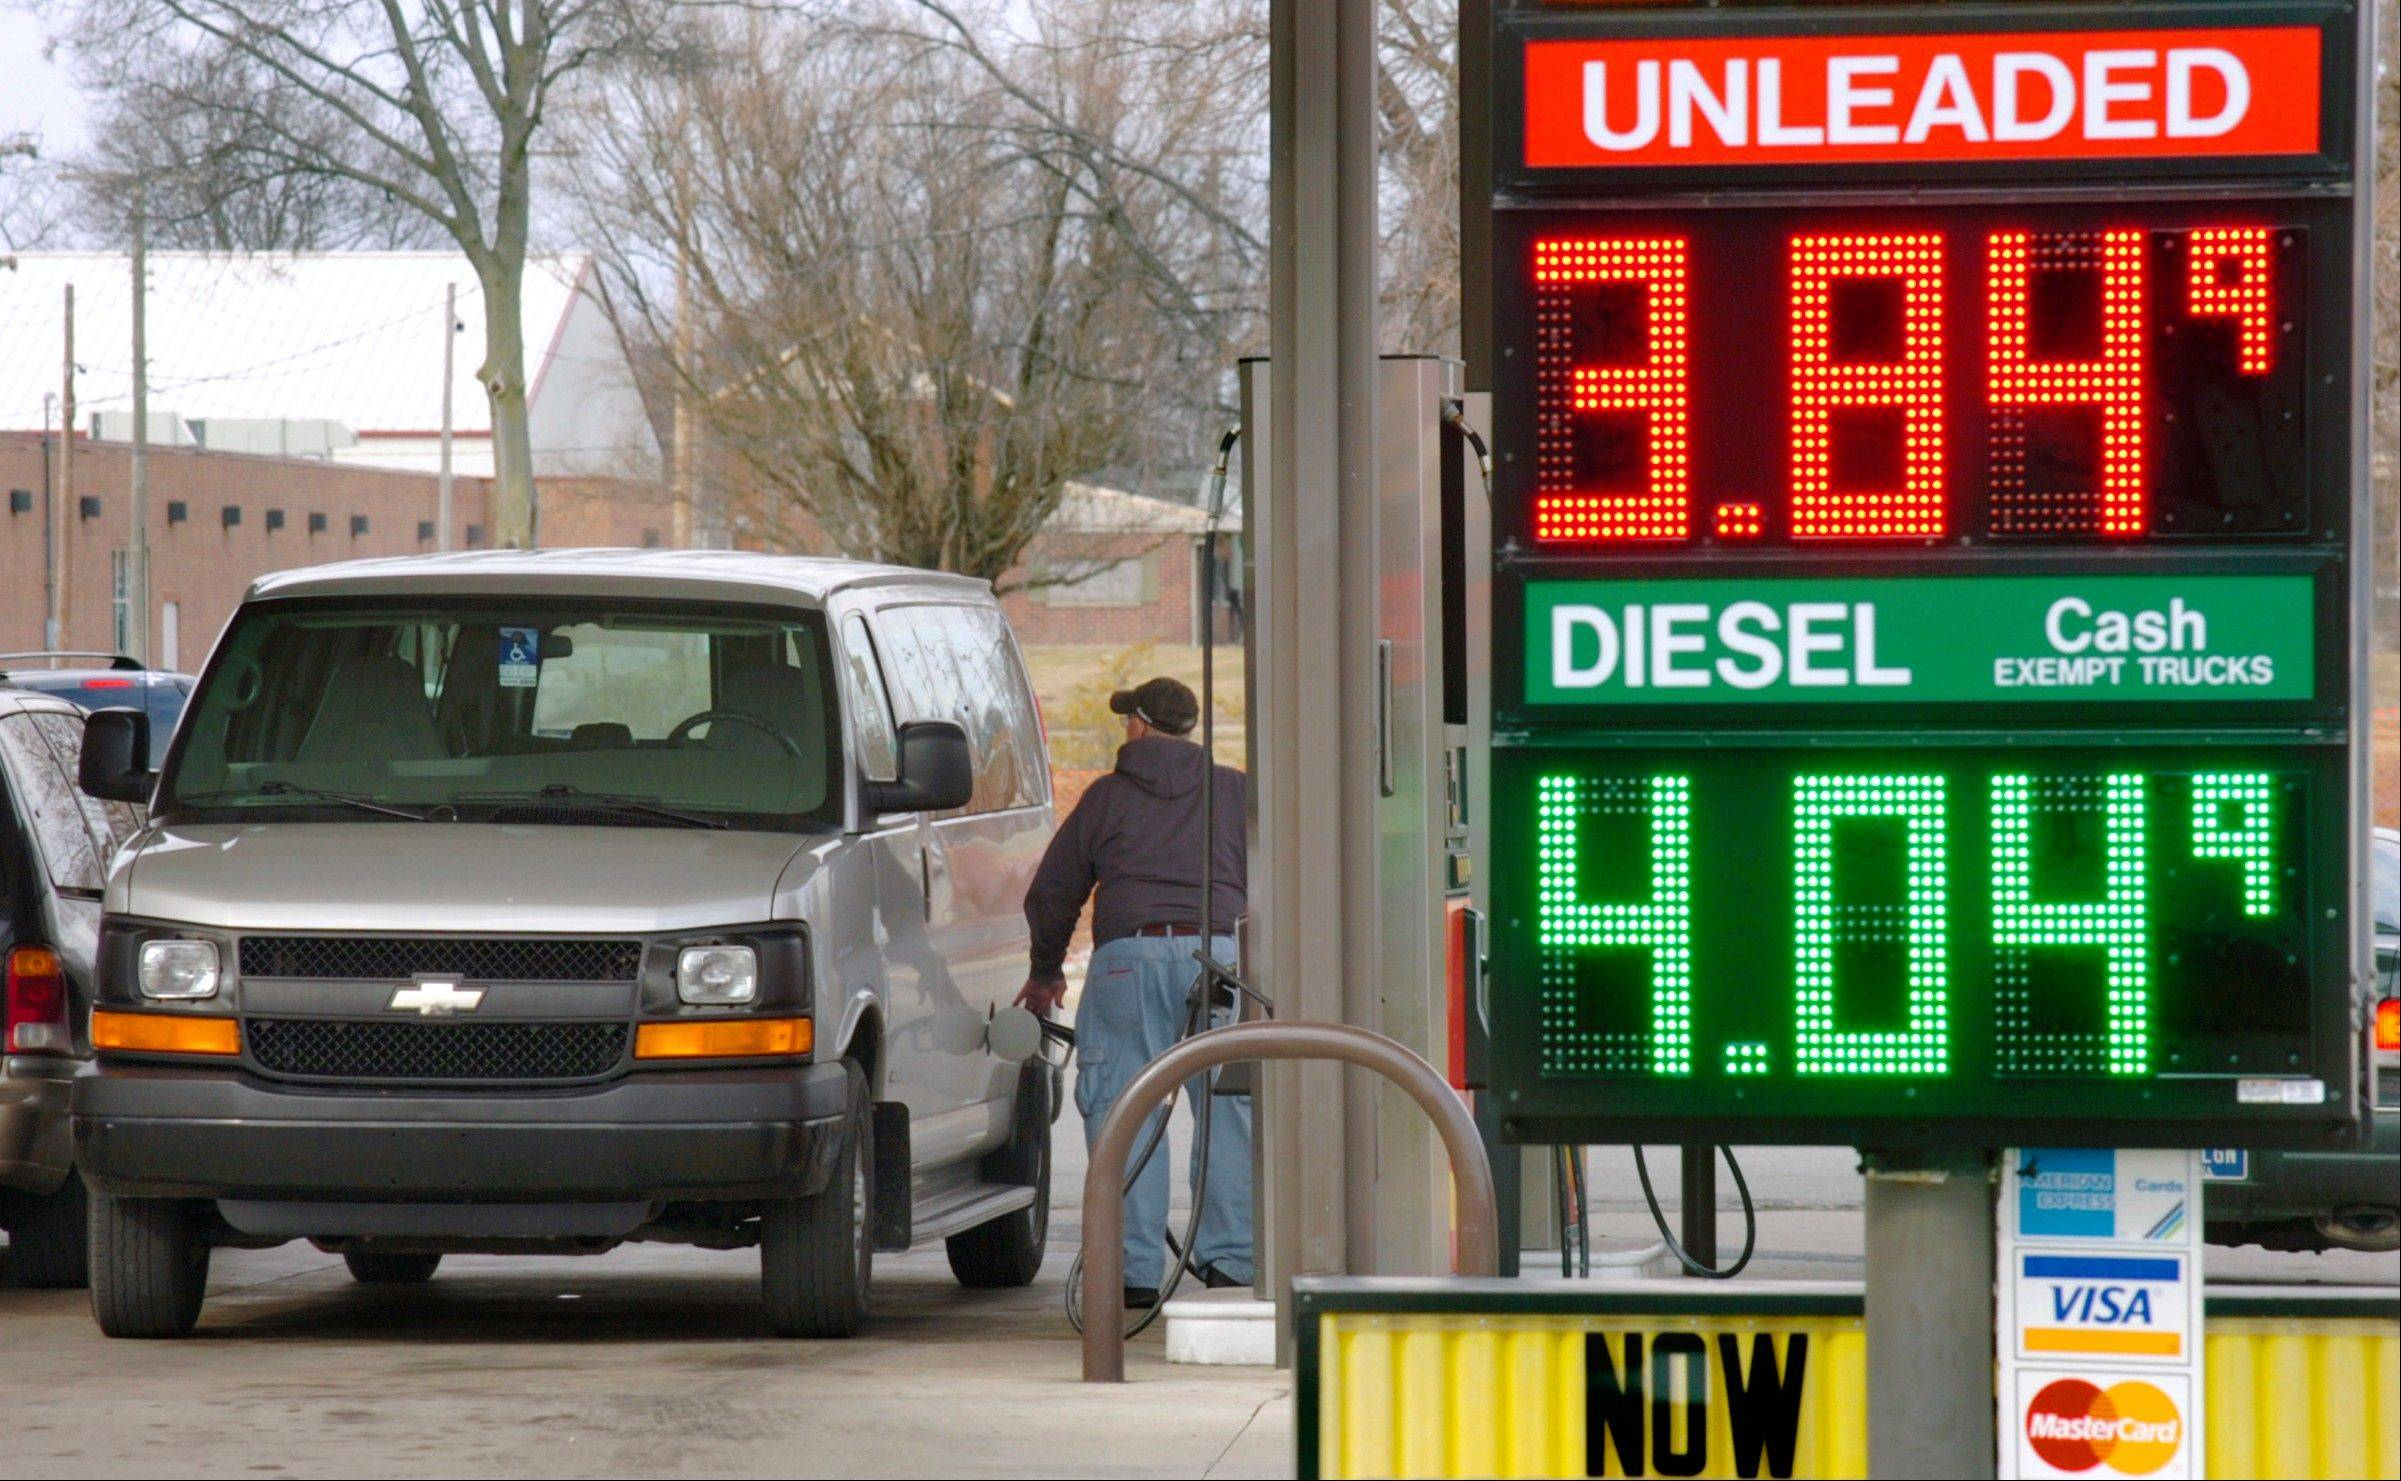 A customer buys gas at a McClure store in Marion, Ind., on Monday, Feb. 18, 2013. With gas prices at around $3.85 a gallon, and other costs rising, many Indiana families are struggling to pay bills.